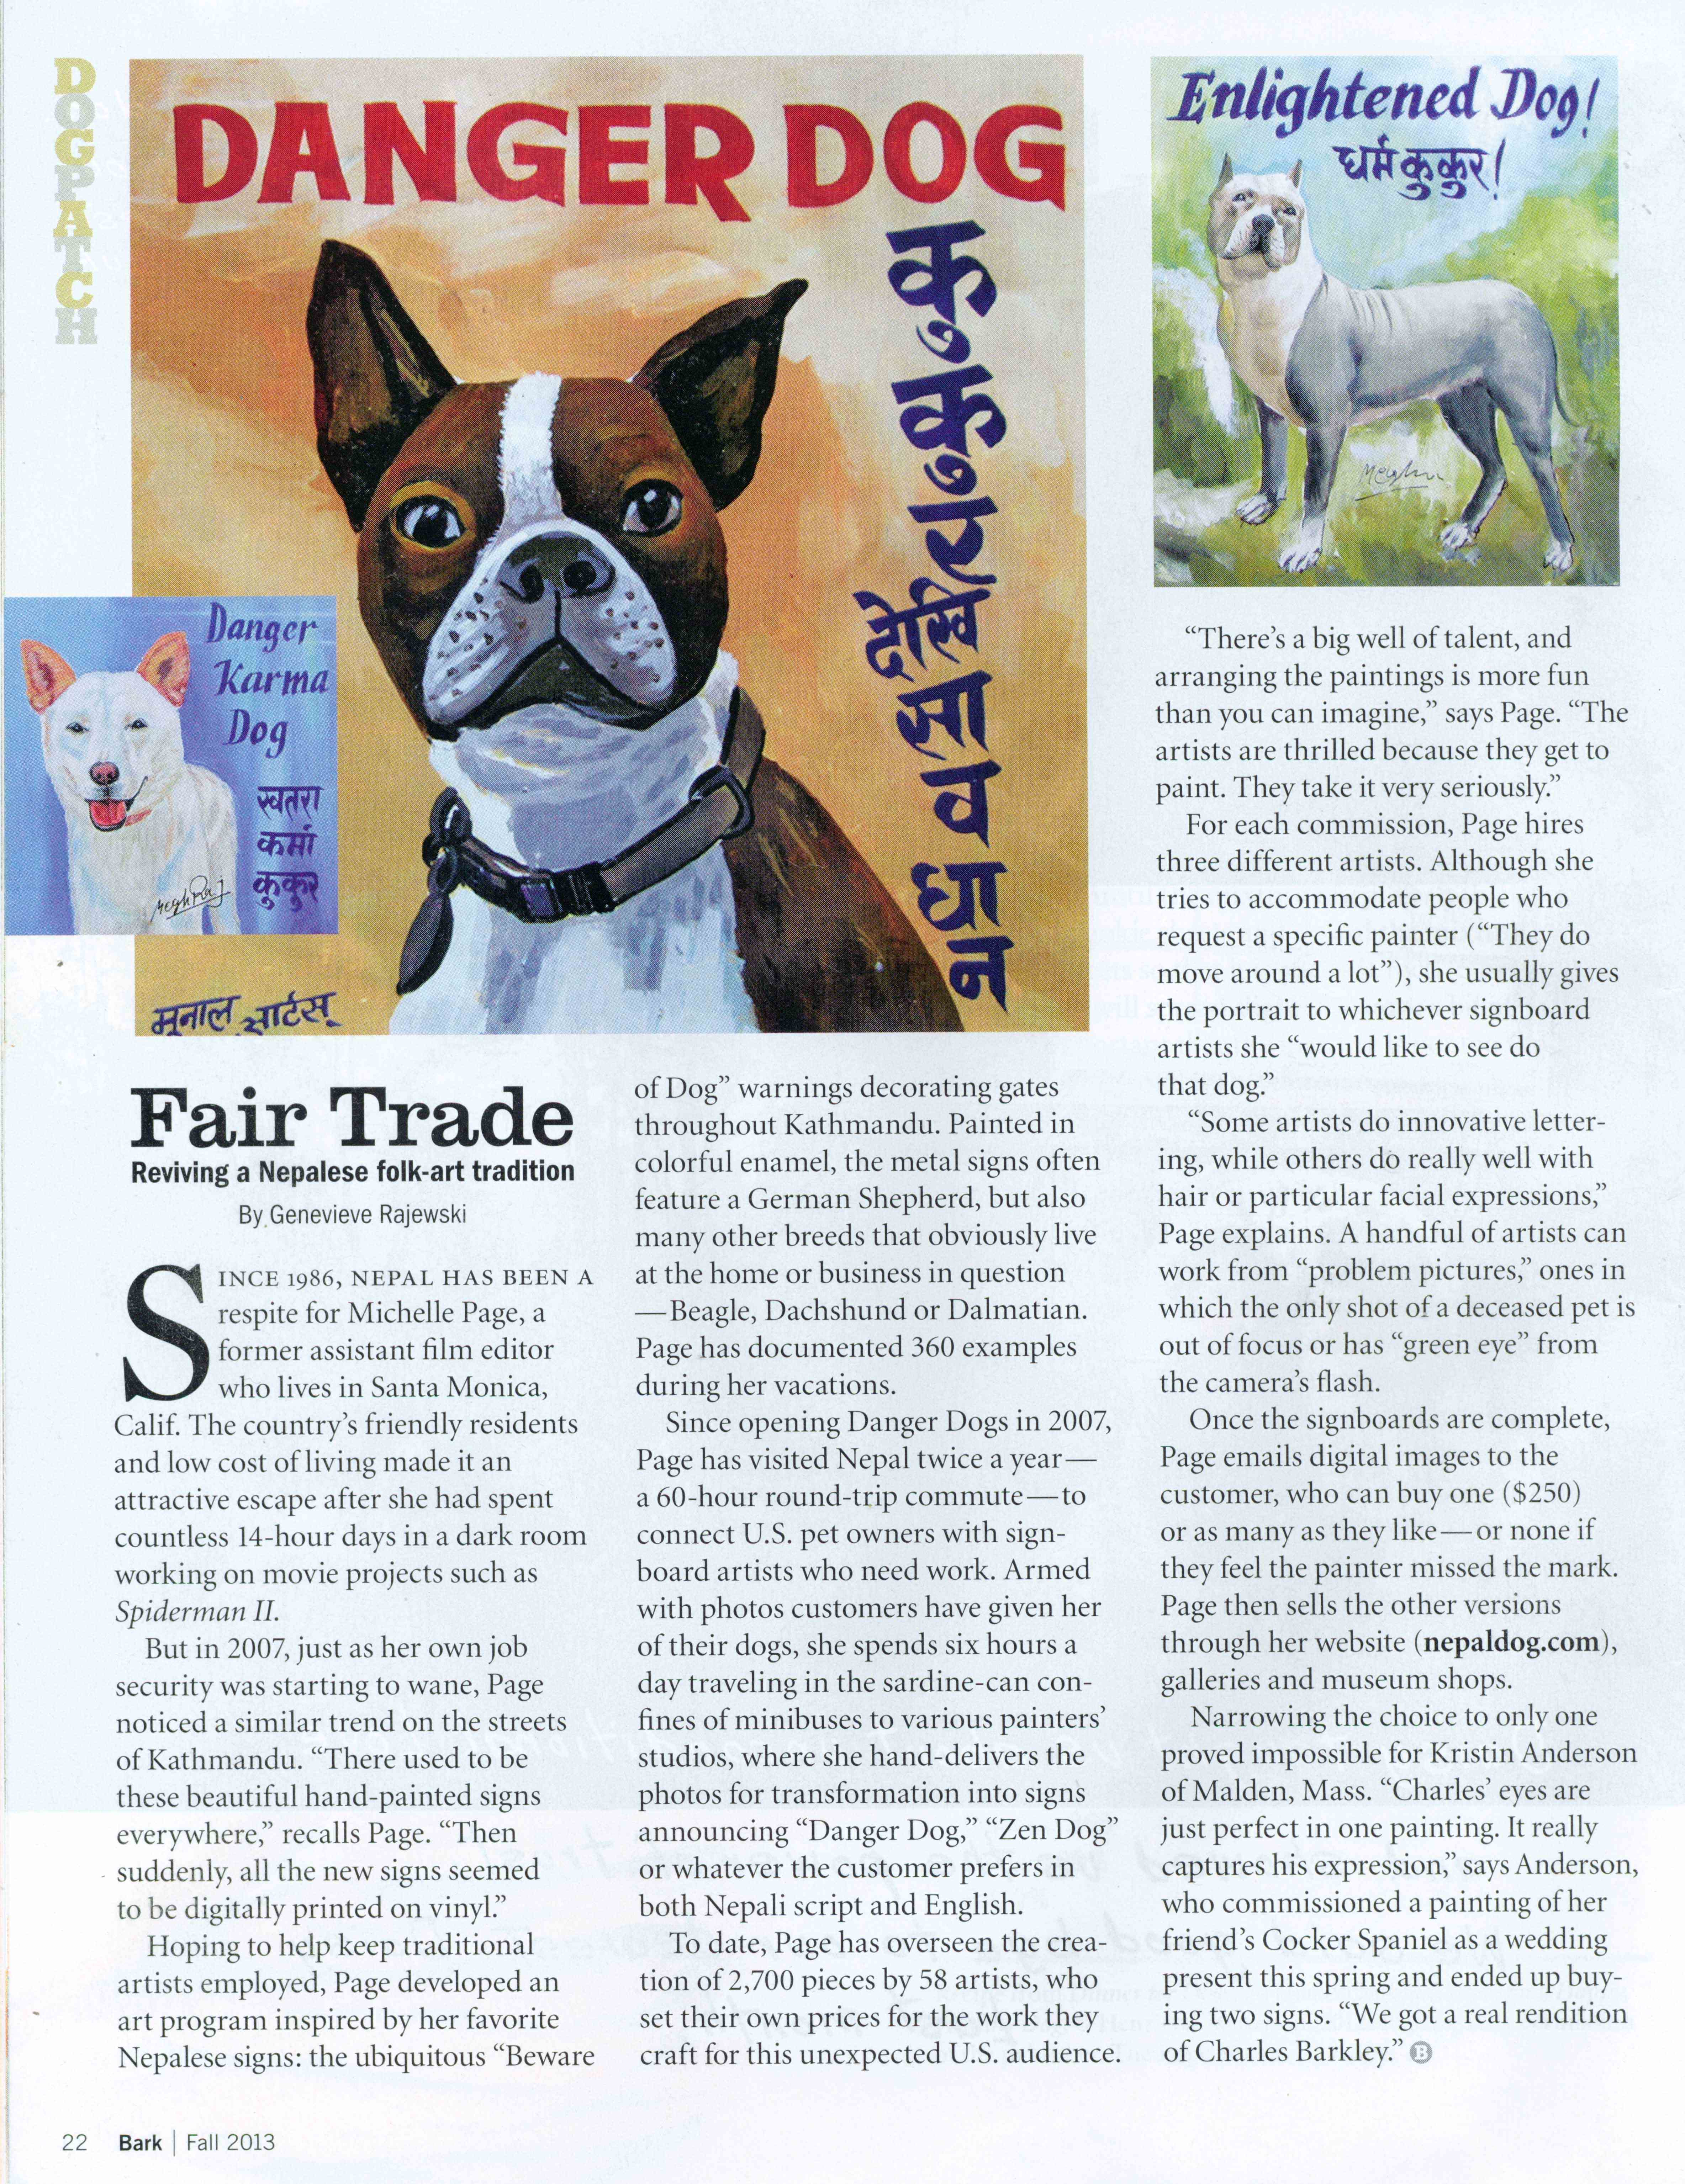 The Danger Dogs are featured in the Bark Magazine